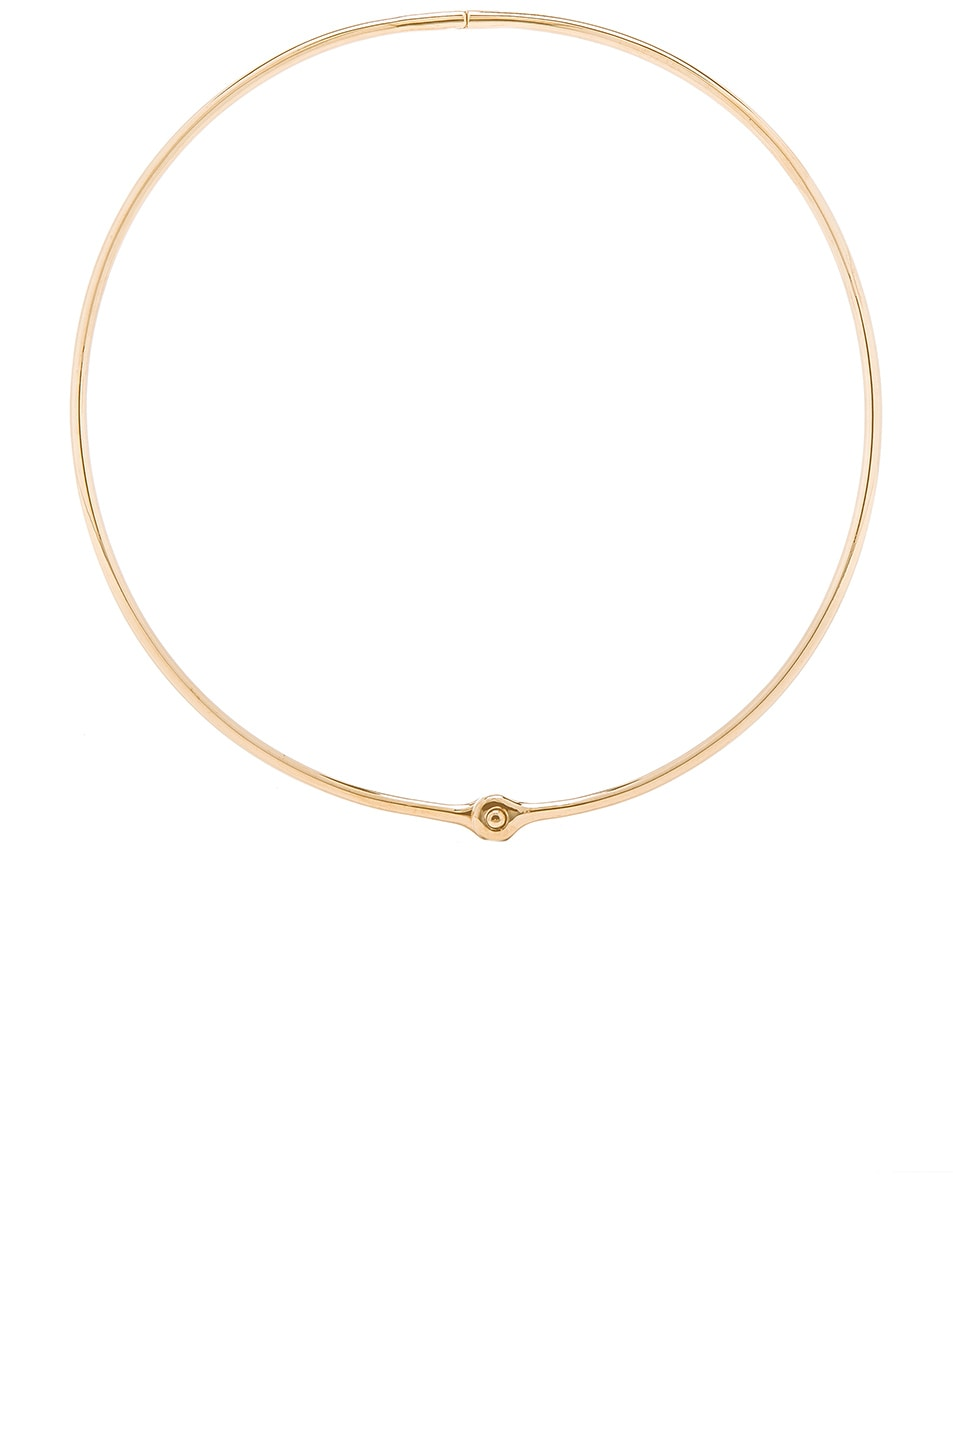 Image 1 of Miansai Thin Reeve Choker in Polished Gold